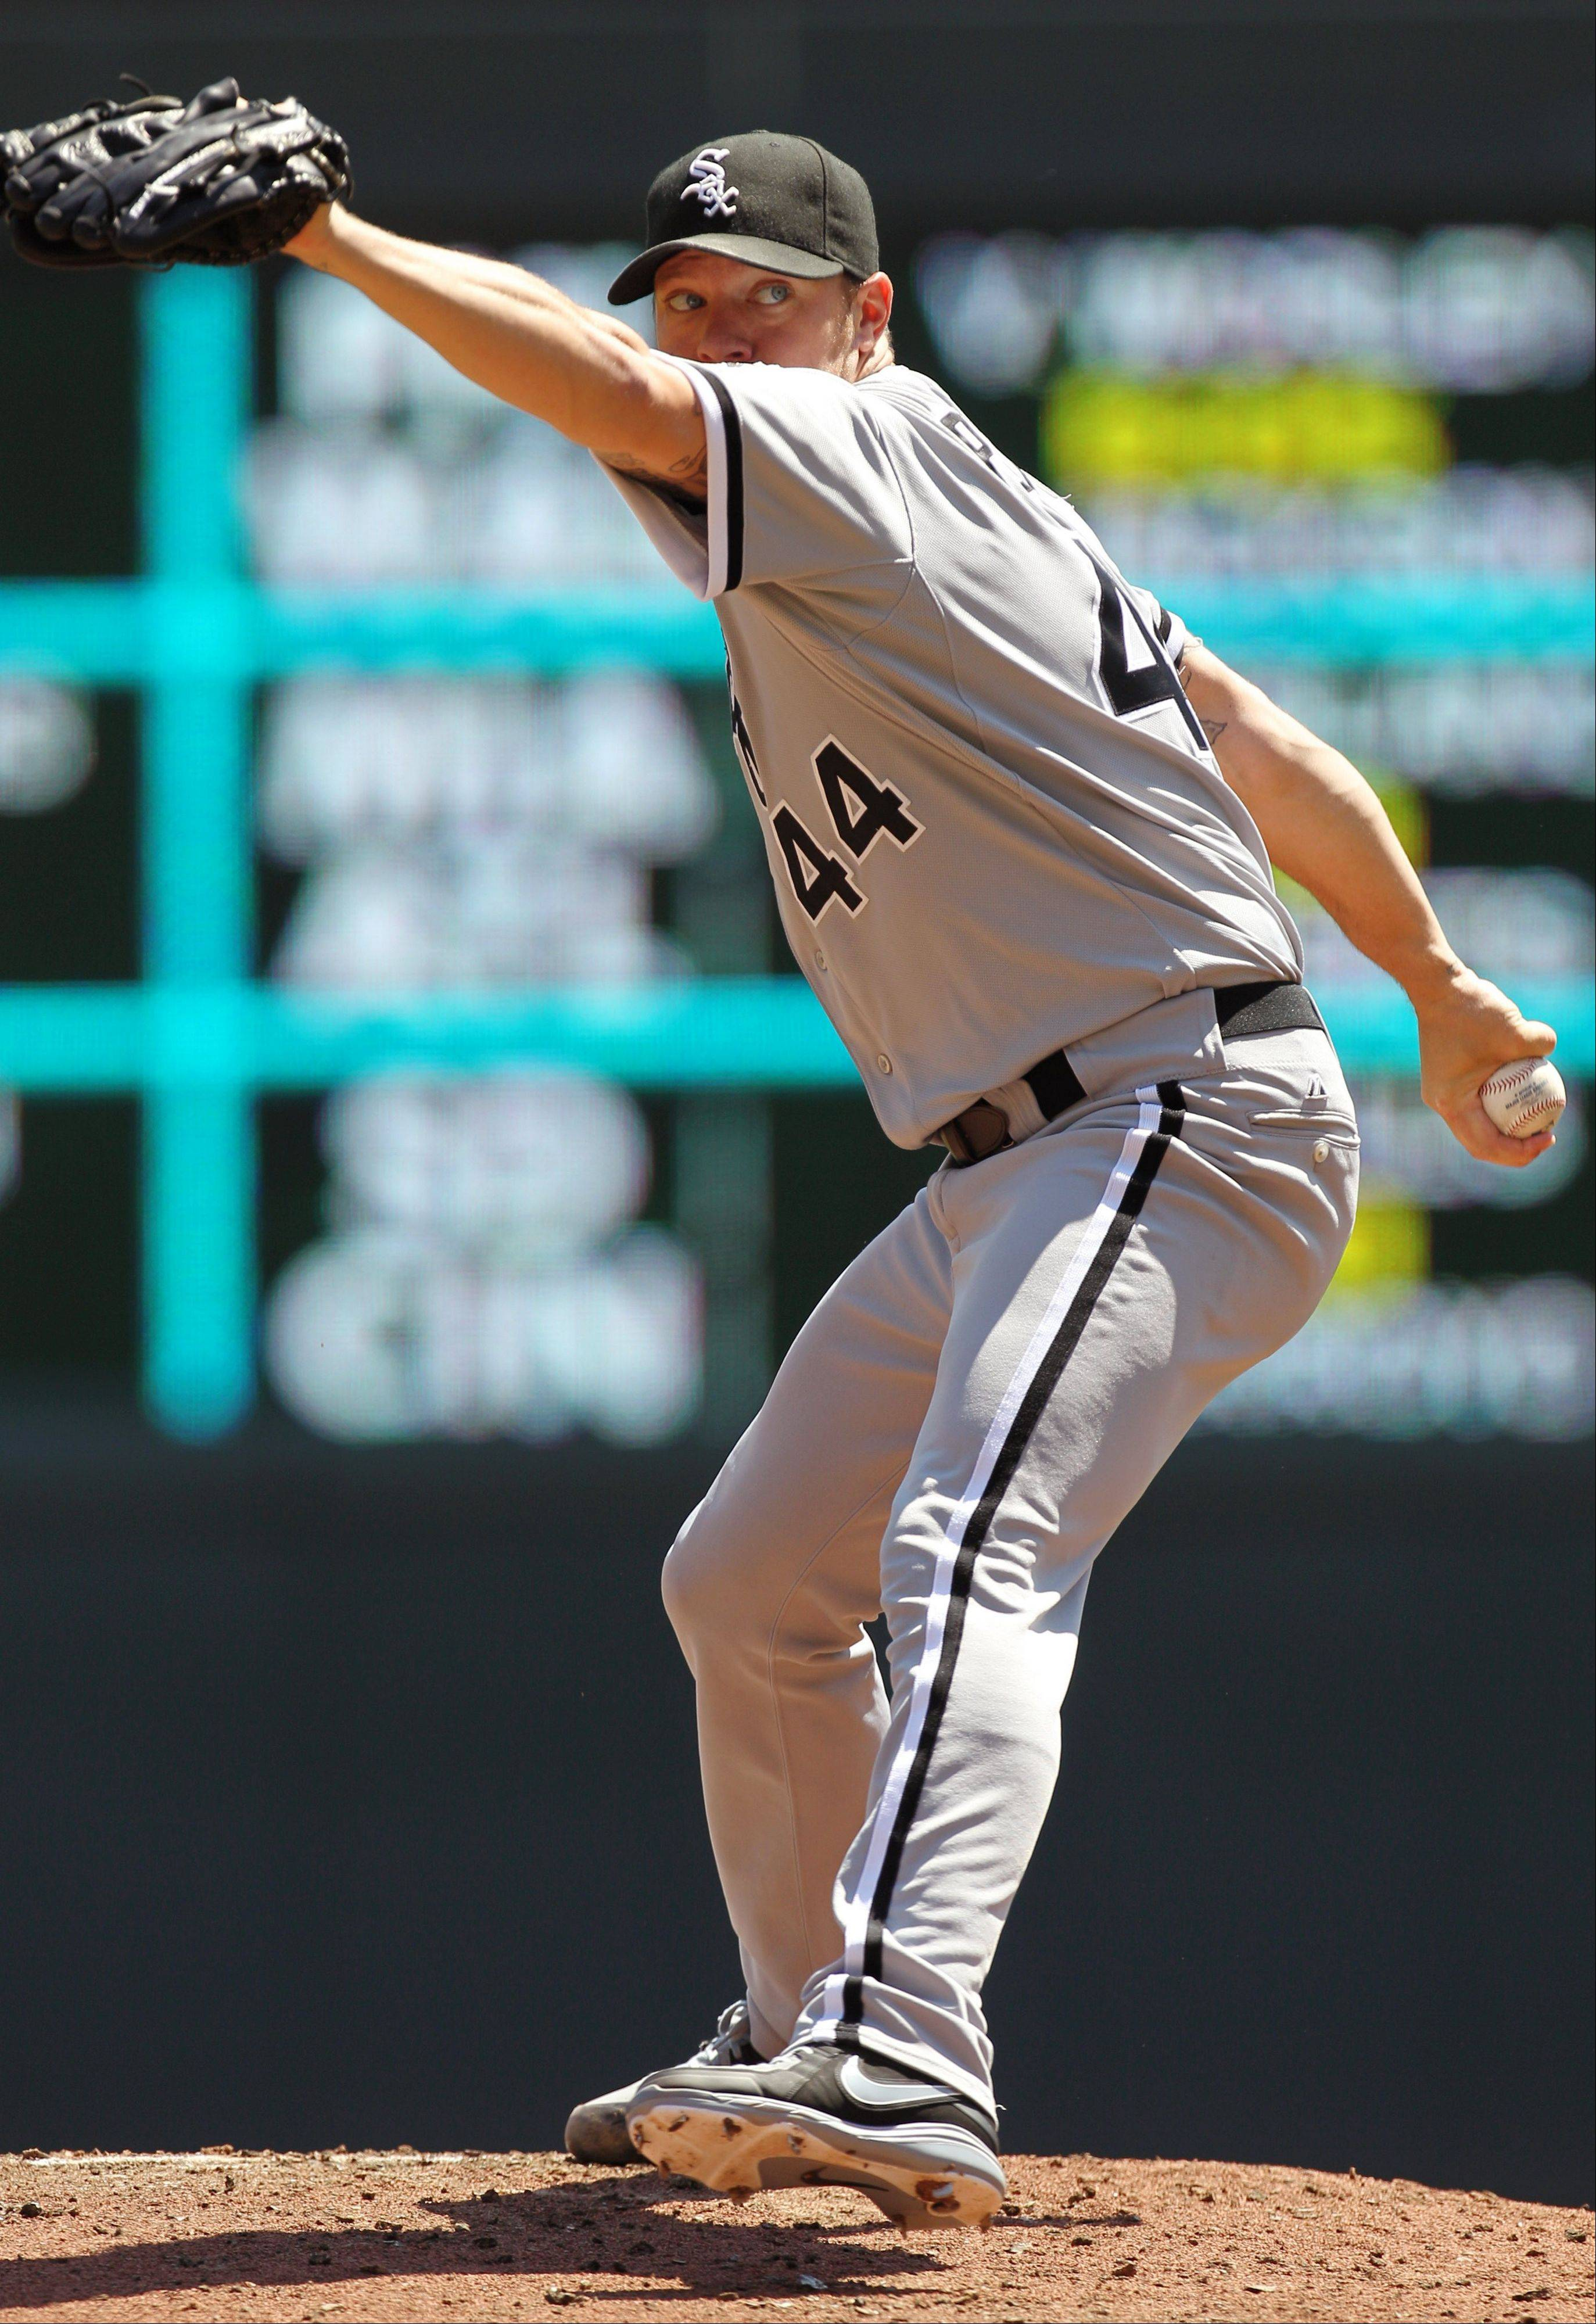 Pitcher Jake Peavy throws against the Minnesota Twins during the second inning of a baseball game, Wednesday, Aug. 1, 2012, in Minneapolis. (AP Photo/Genevieve Ross)